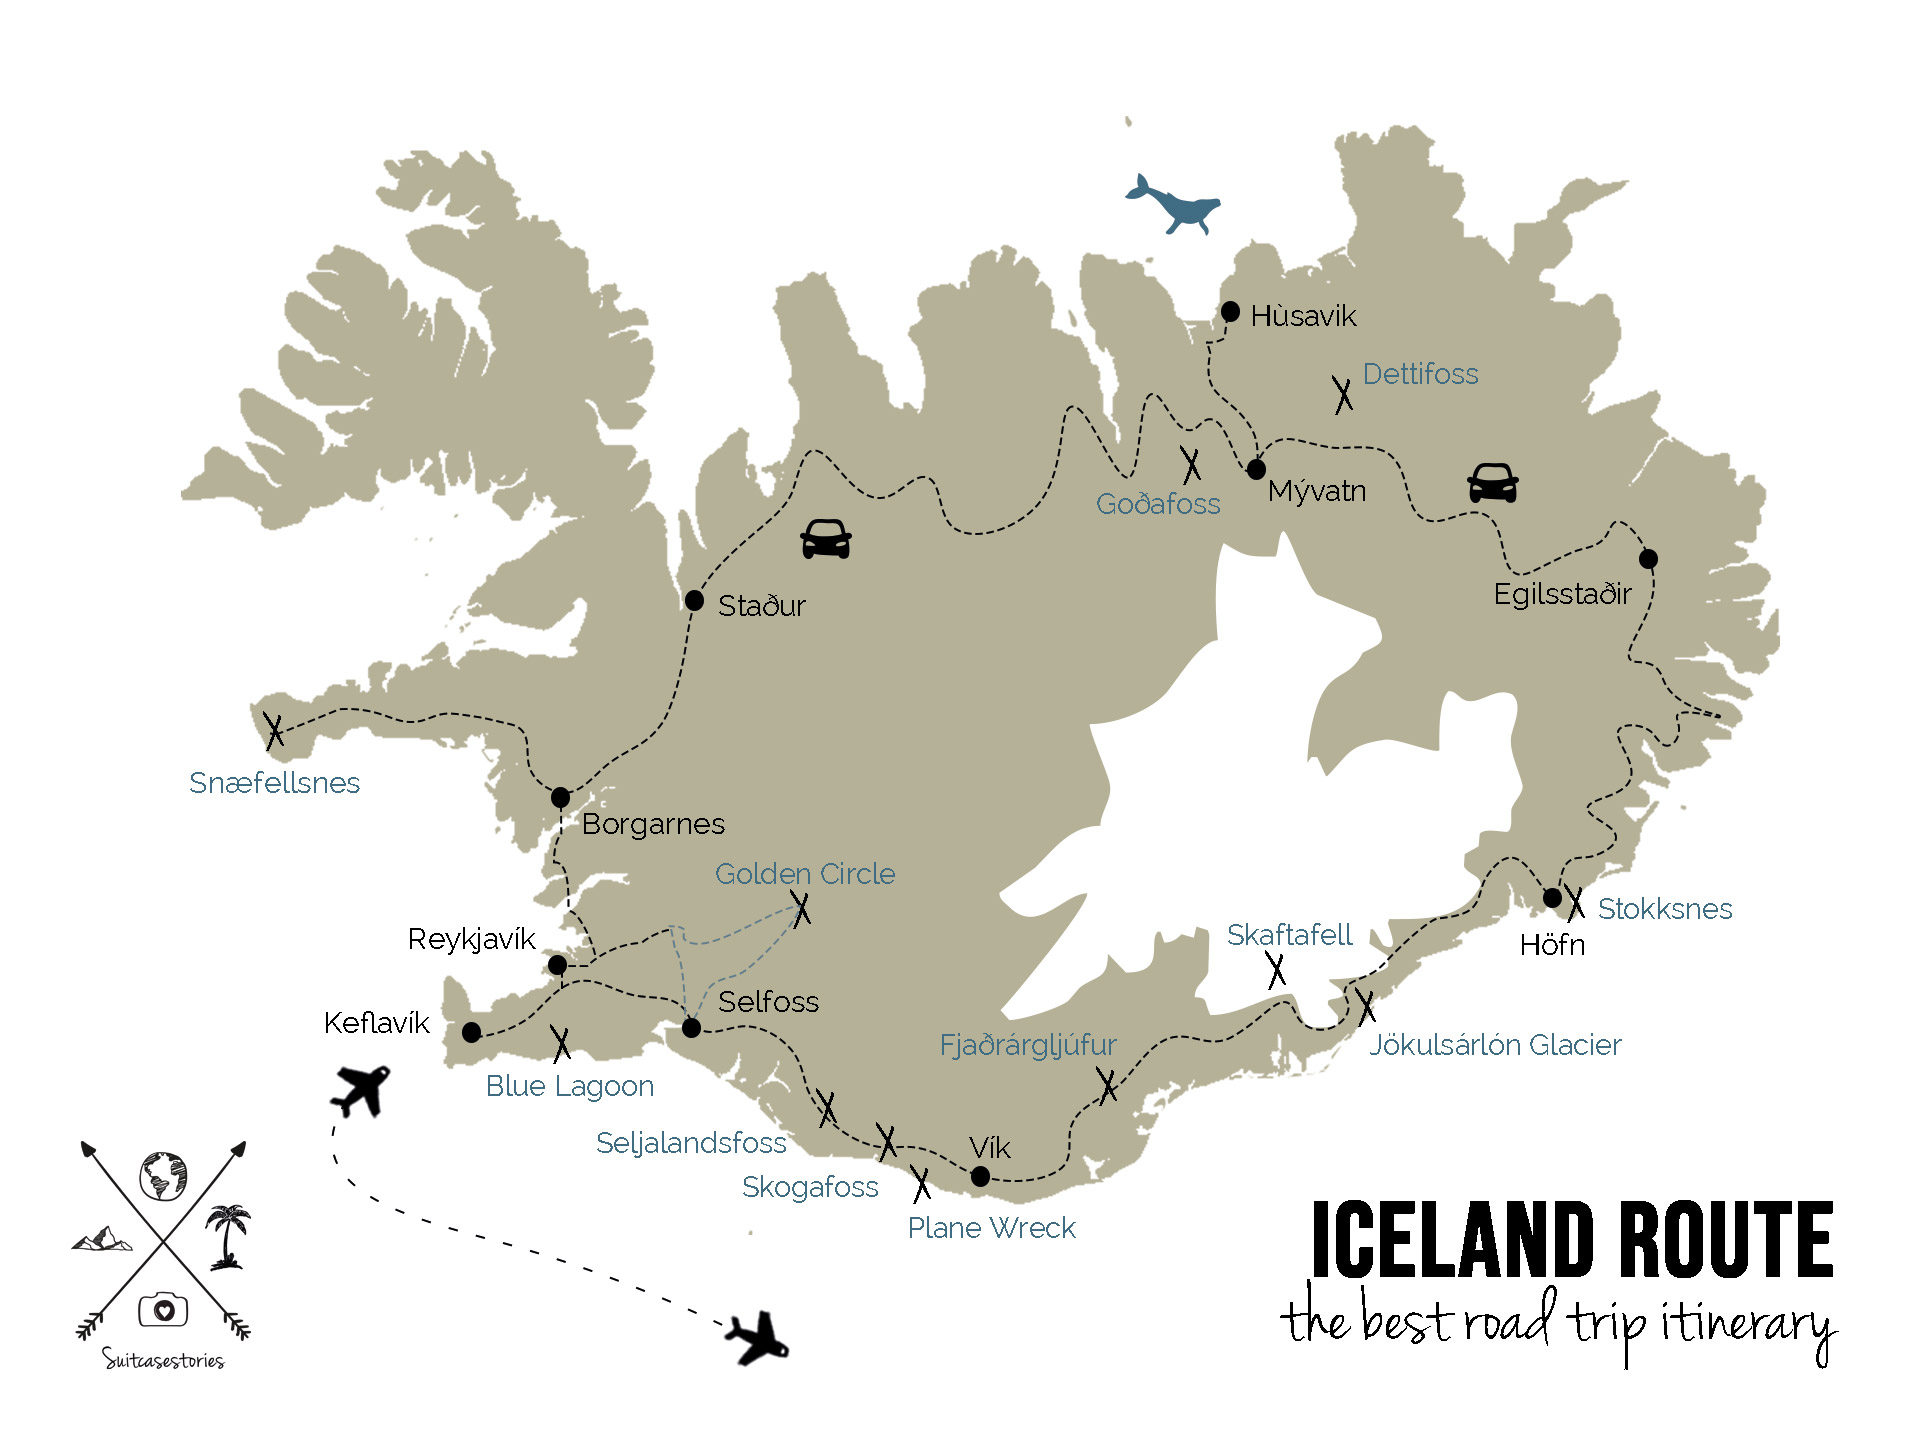 Iceland Route: the best road trip itinerary for 10 days